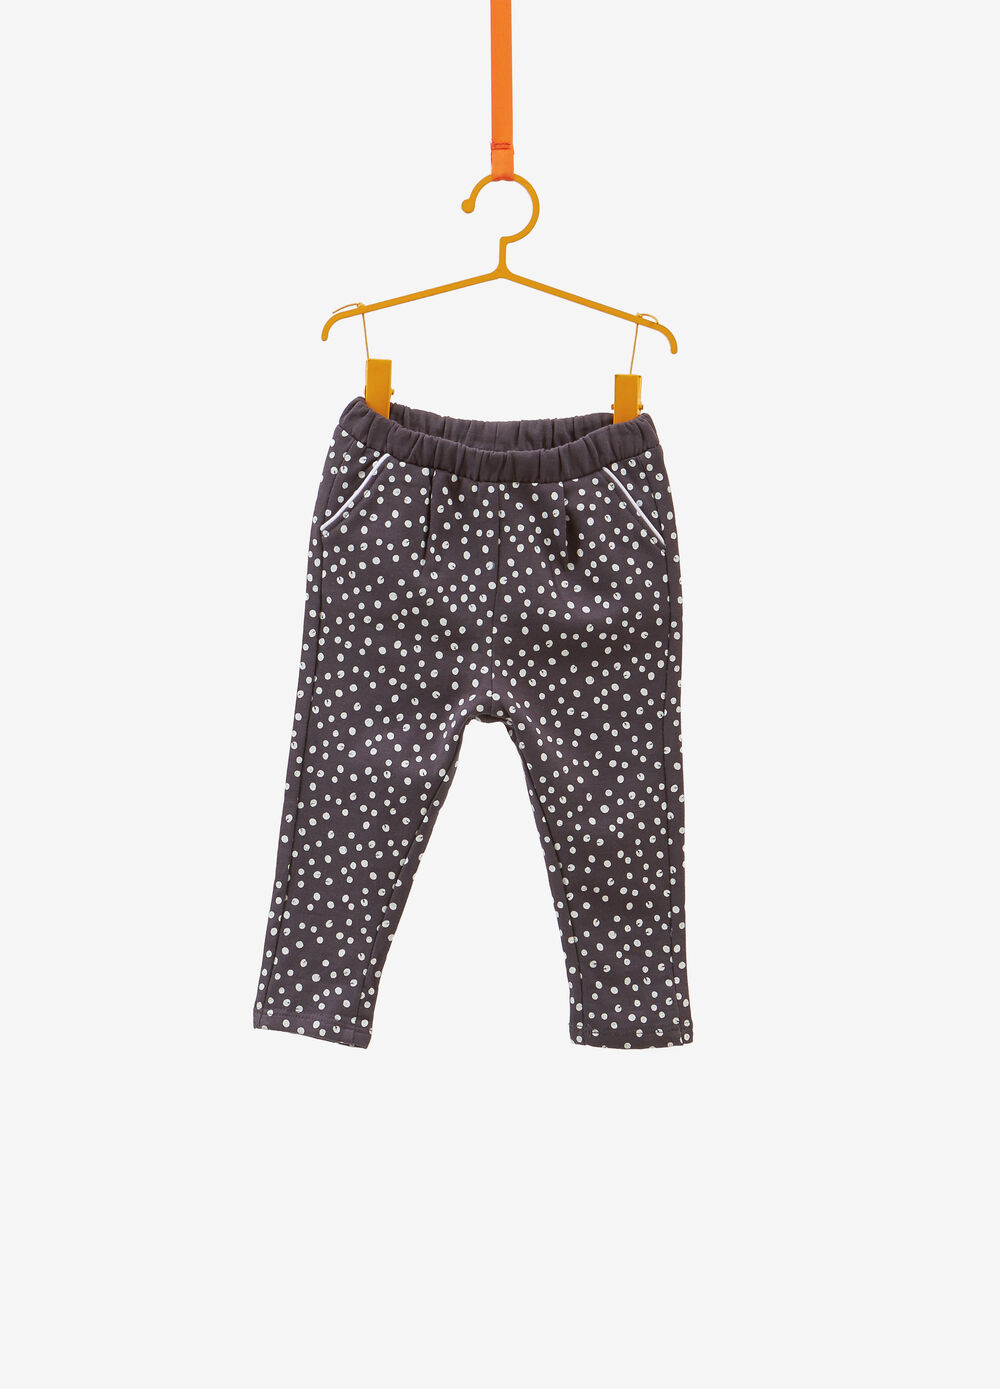 100% cotton trousers with polka dot pattern